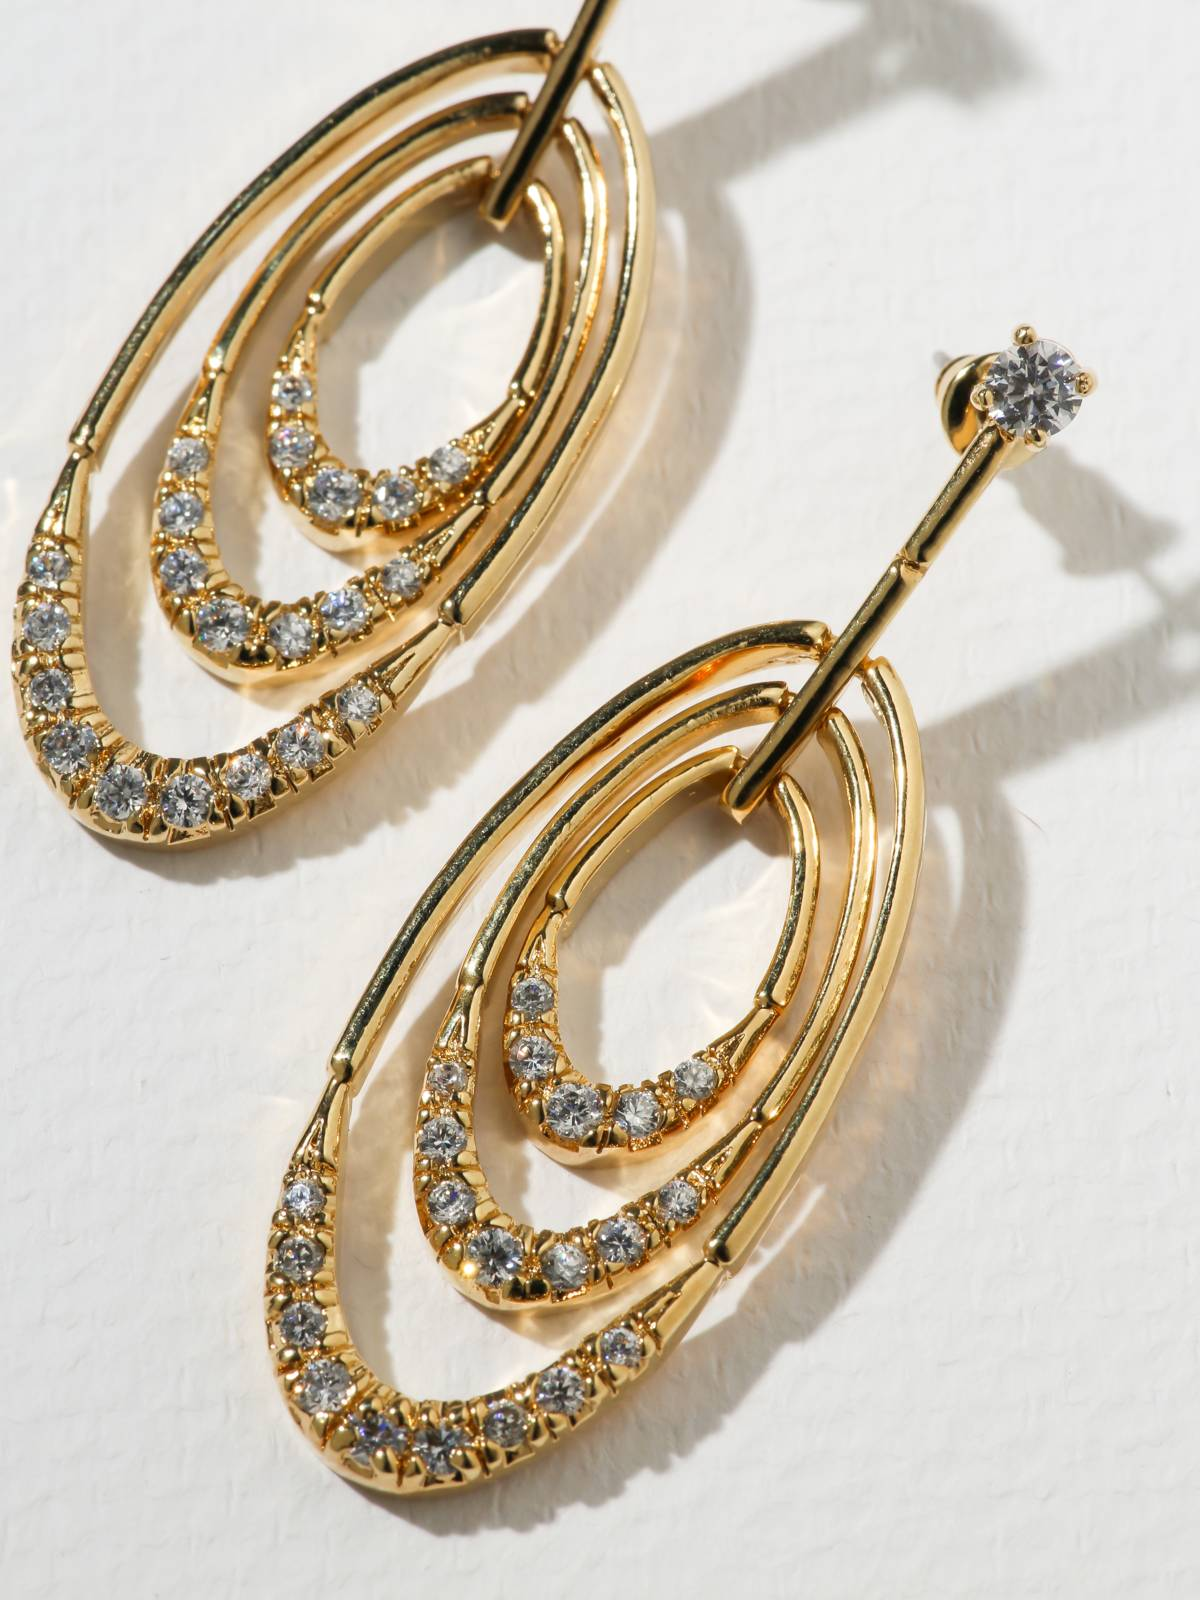 The Constantine Earrings